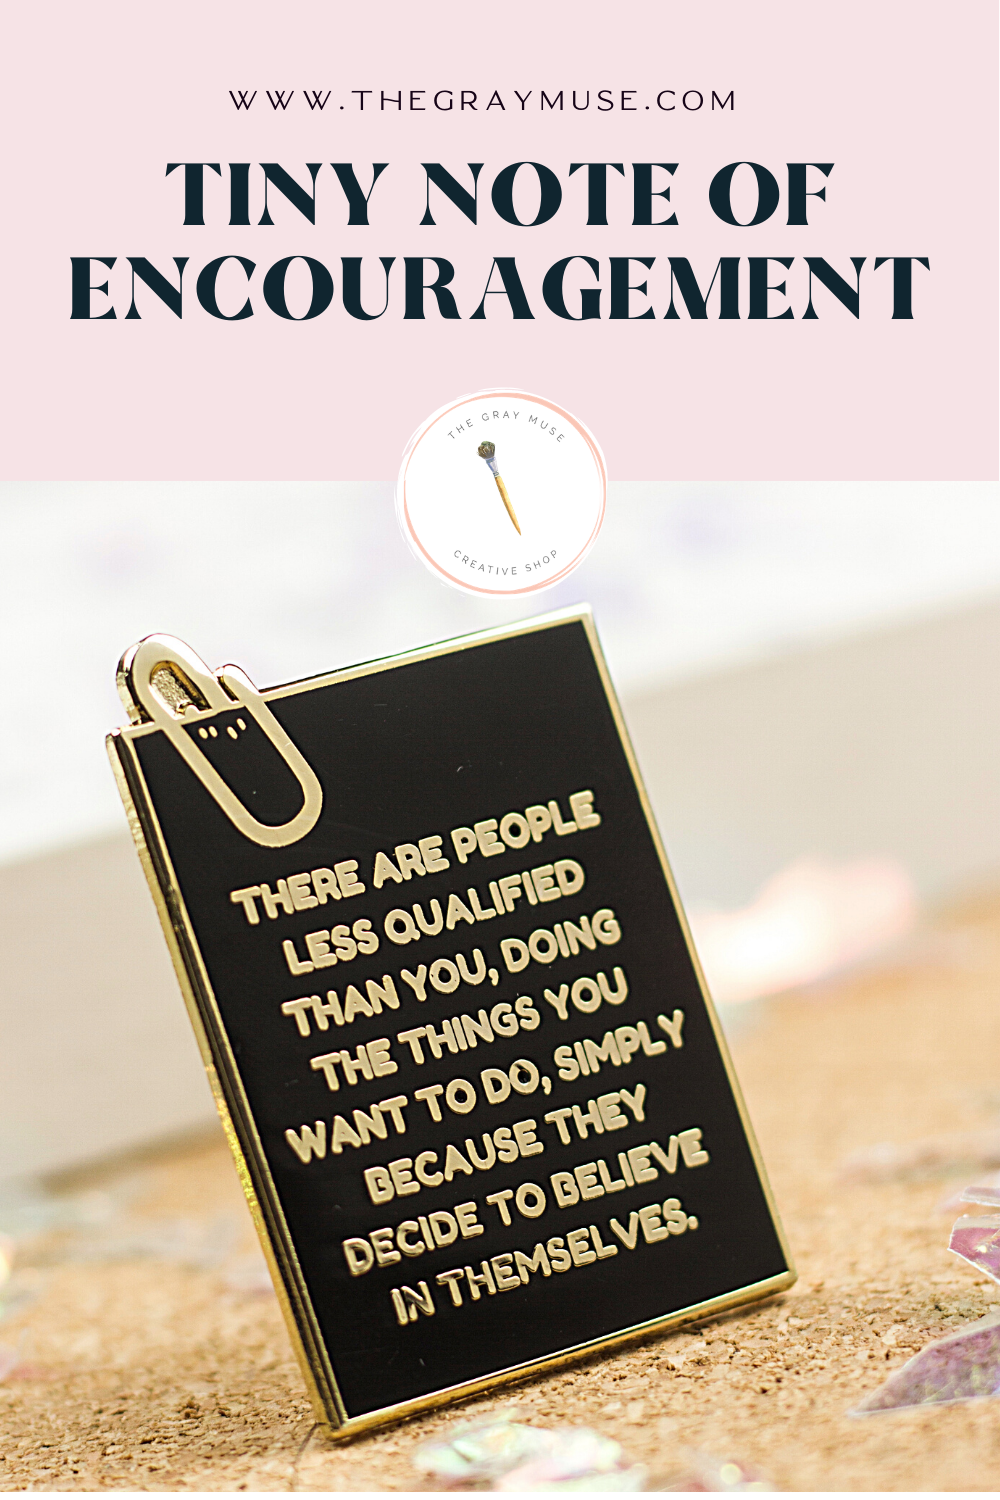 The Gray Muse - Tiny Note of Encouragement - Pinterest